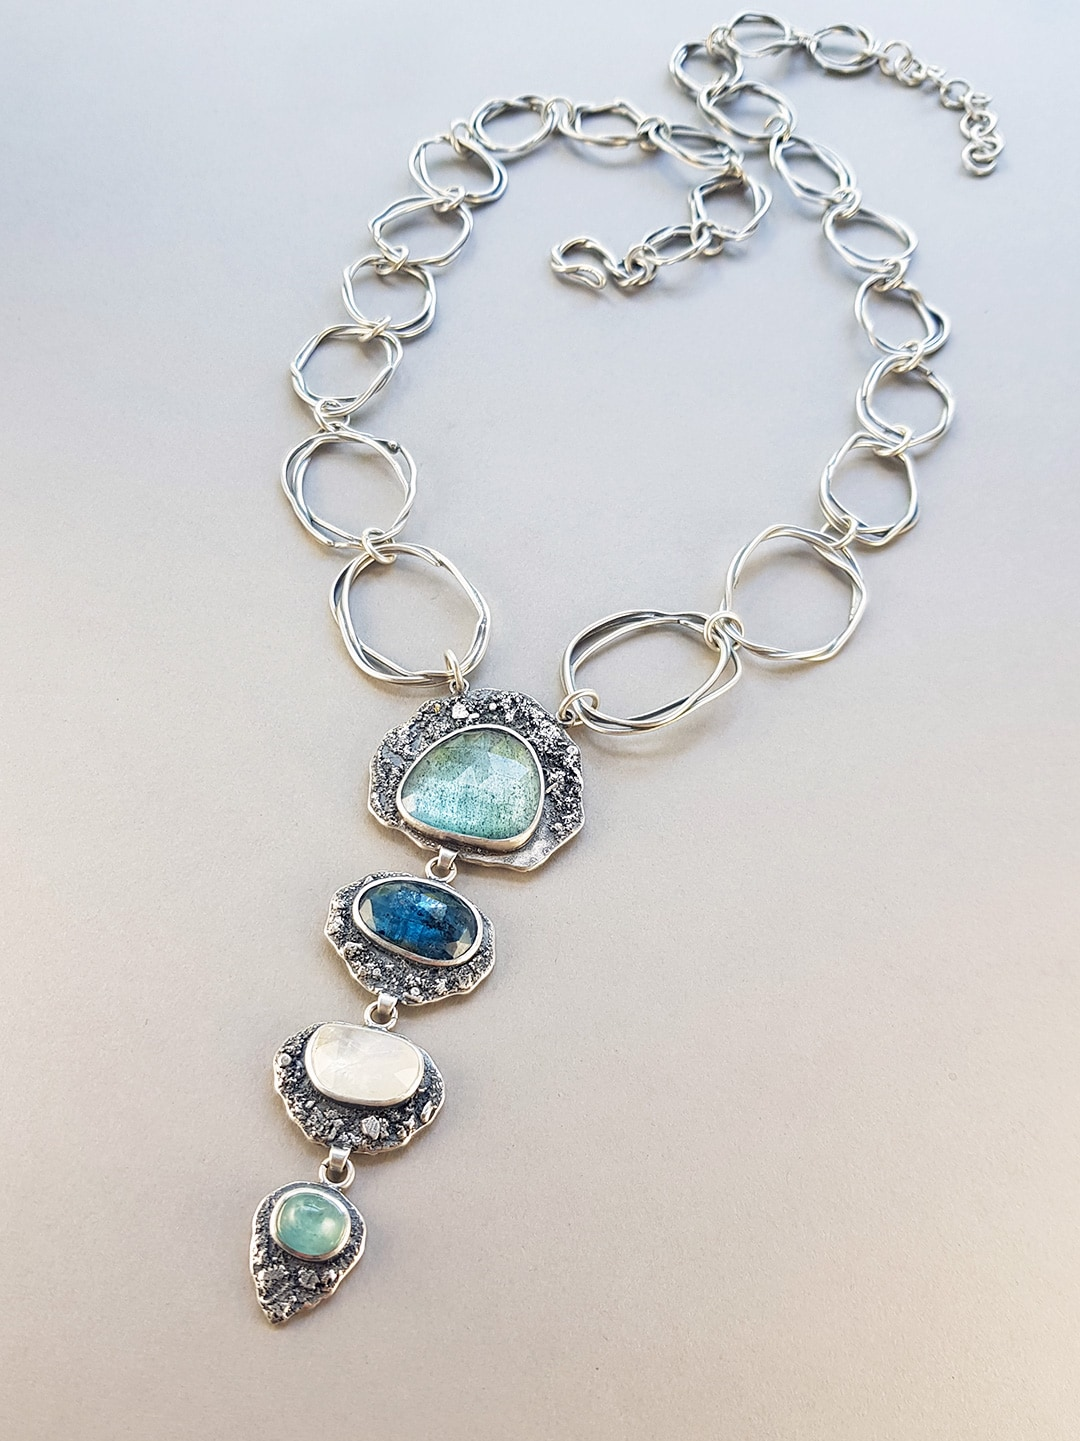 Statement necklace with gemstones and handmade chain